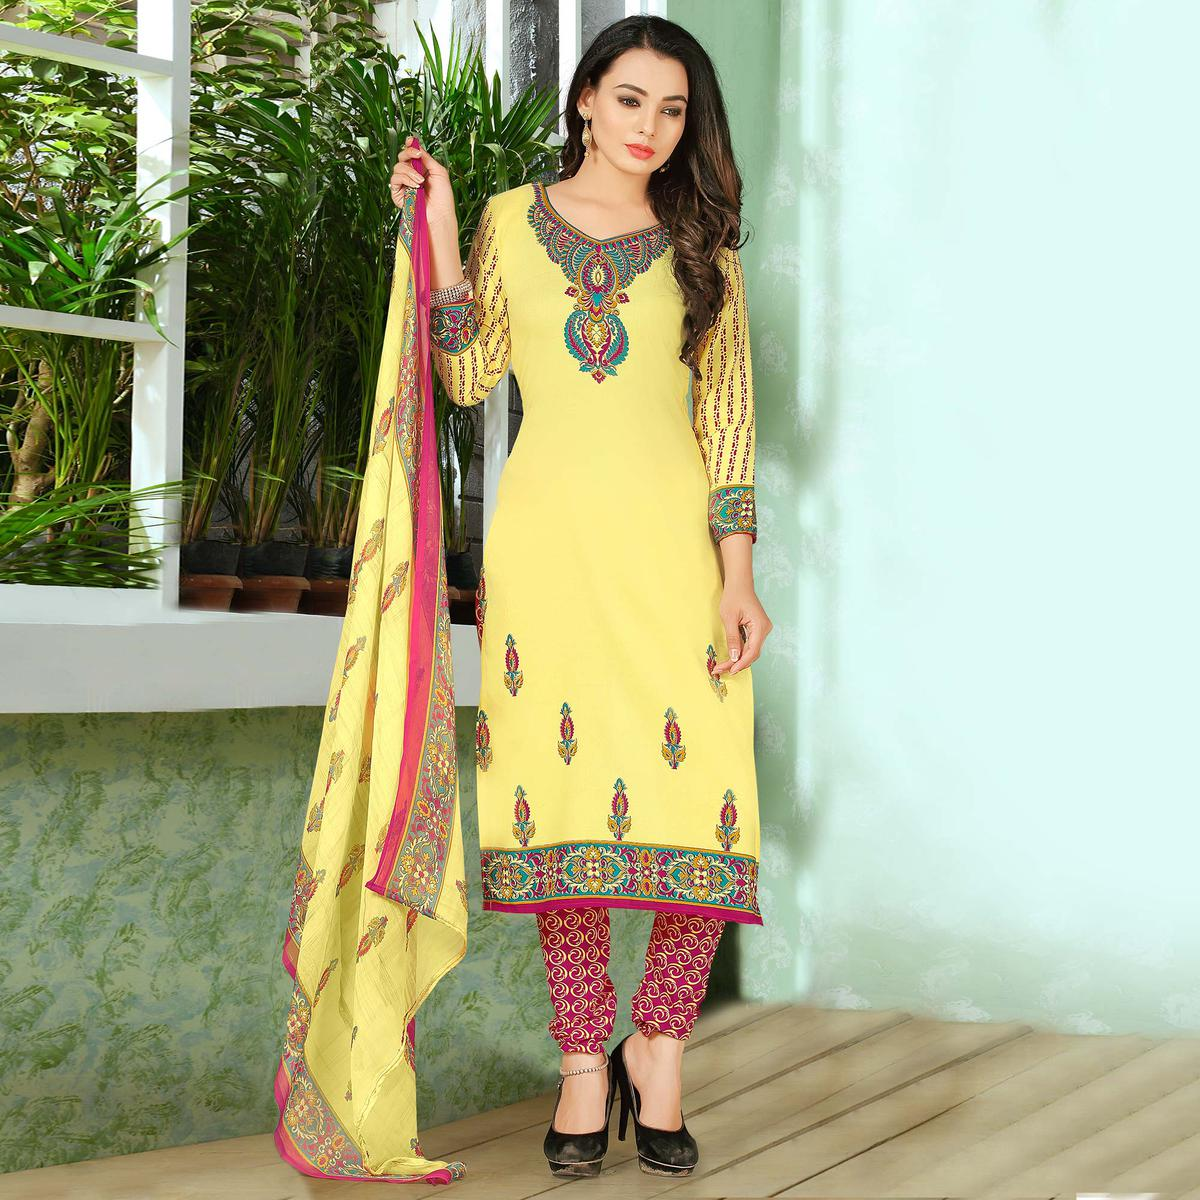 ad81ac4624 Buy Gorgeous Yellow Designer Printed Casual Wear Crepe Dress Material  Online India, Best Prices, Reviews - Peachmode